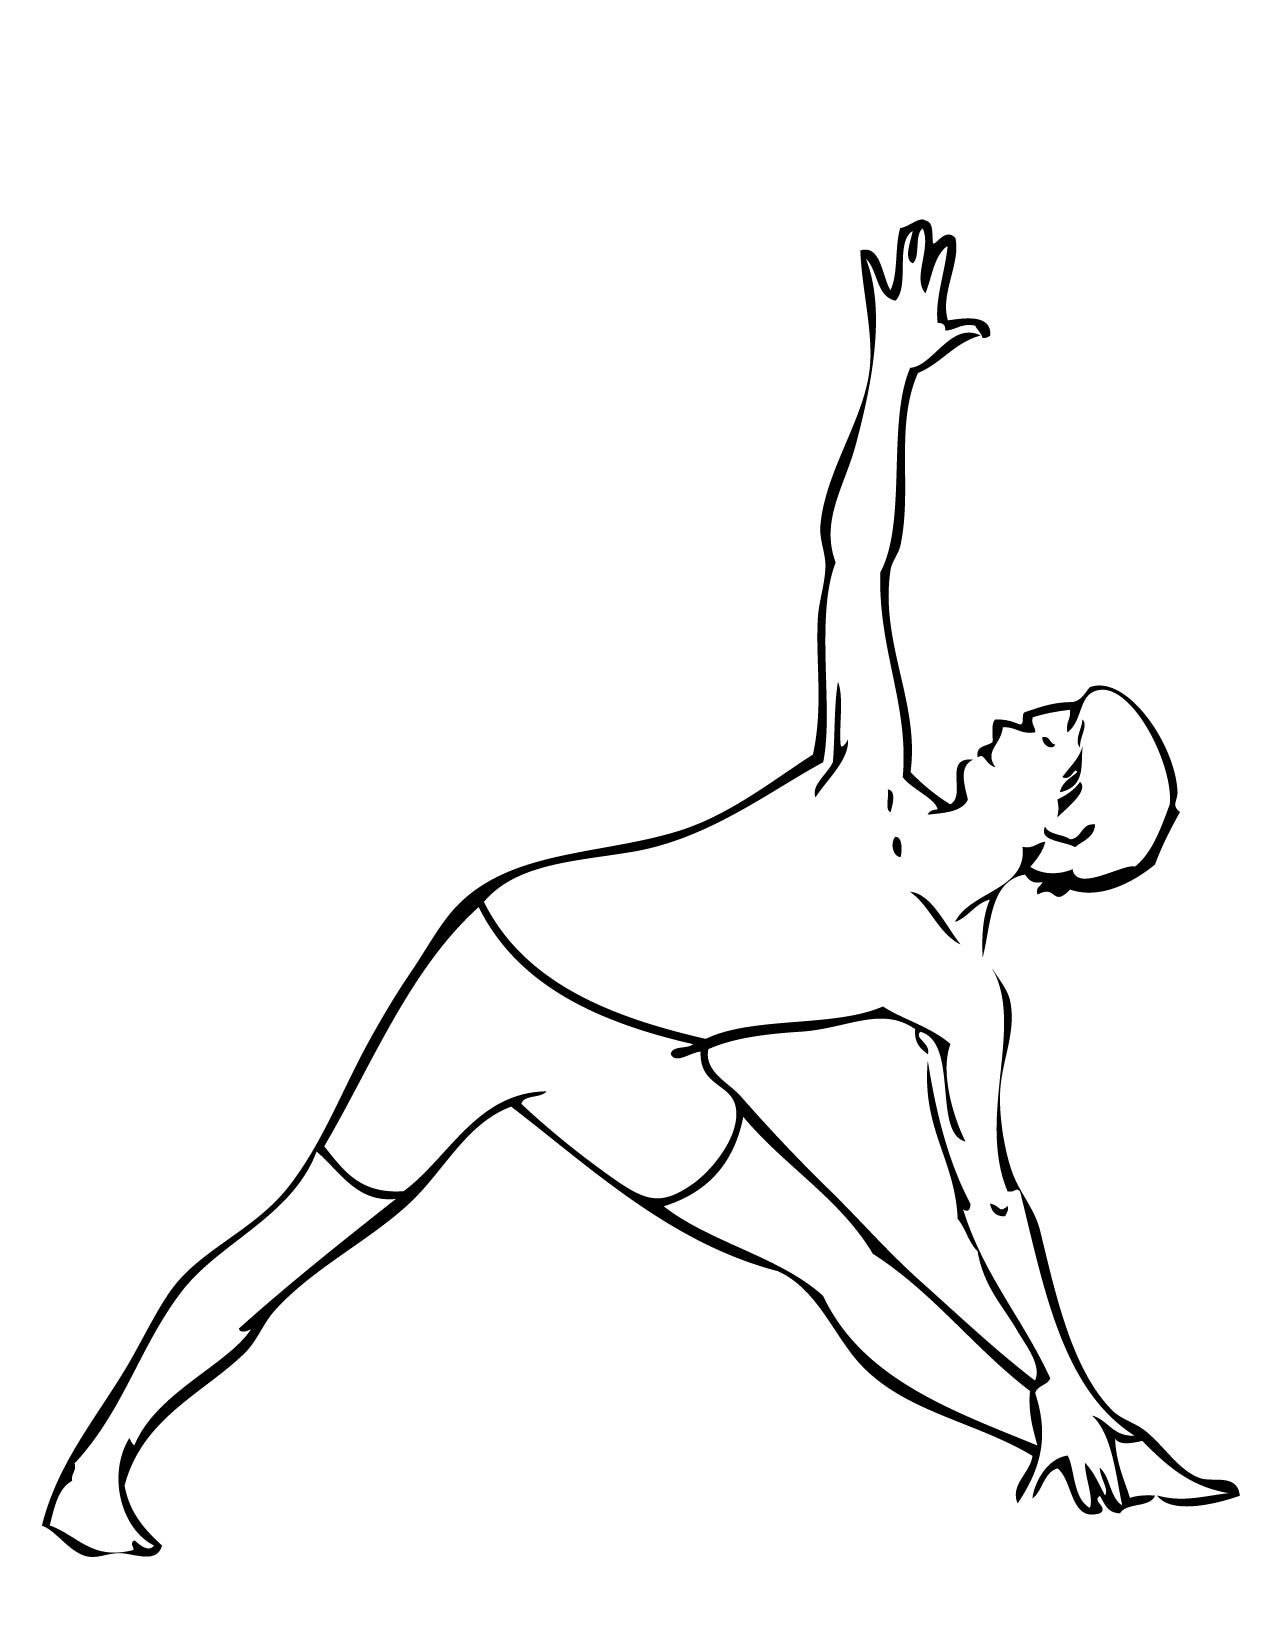 Kids Yoga Coloring Pages Yoga For Kids Coloring Pages Coloring